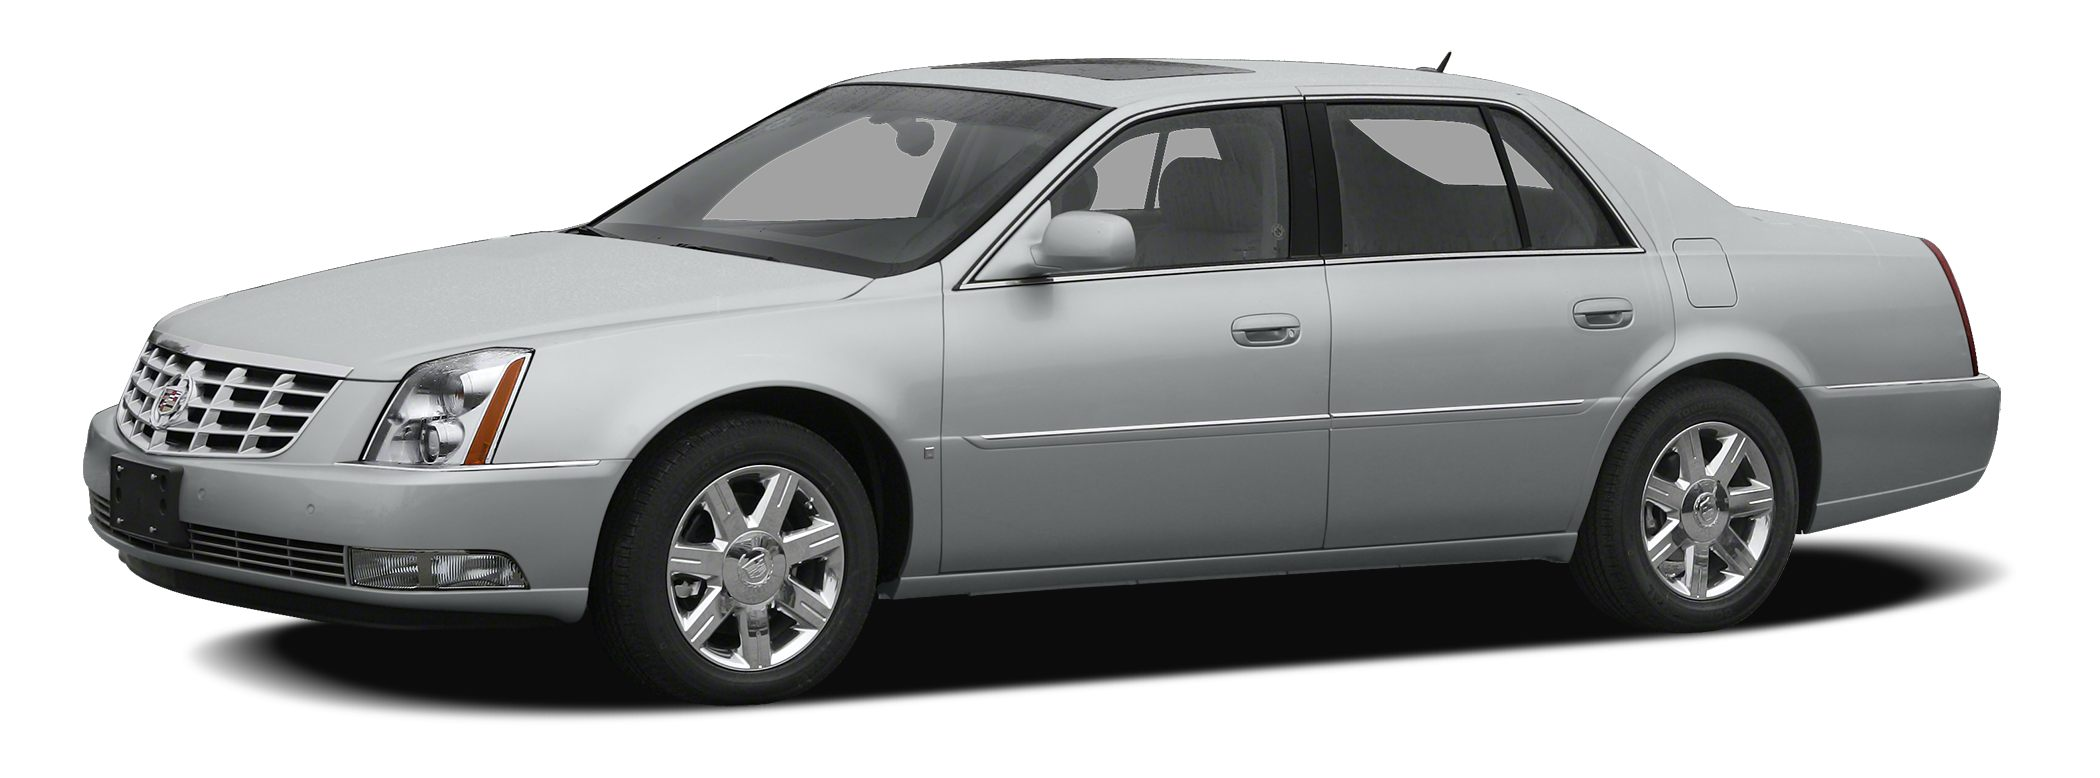 2011 Cadillac DTS Premium Grab a bargain on this 2011 Cadillac DTS Premium Collection before someo